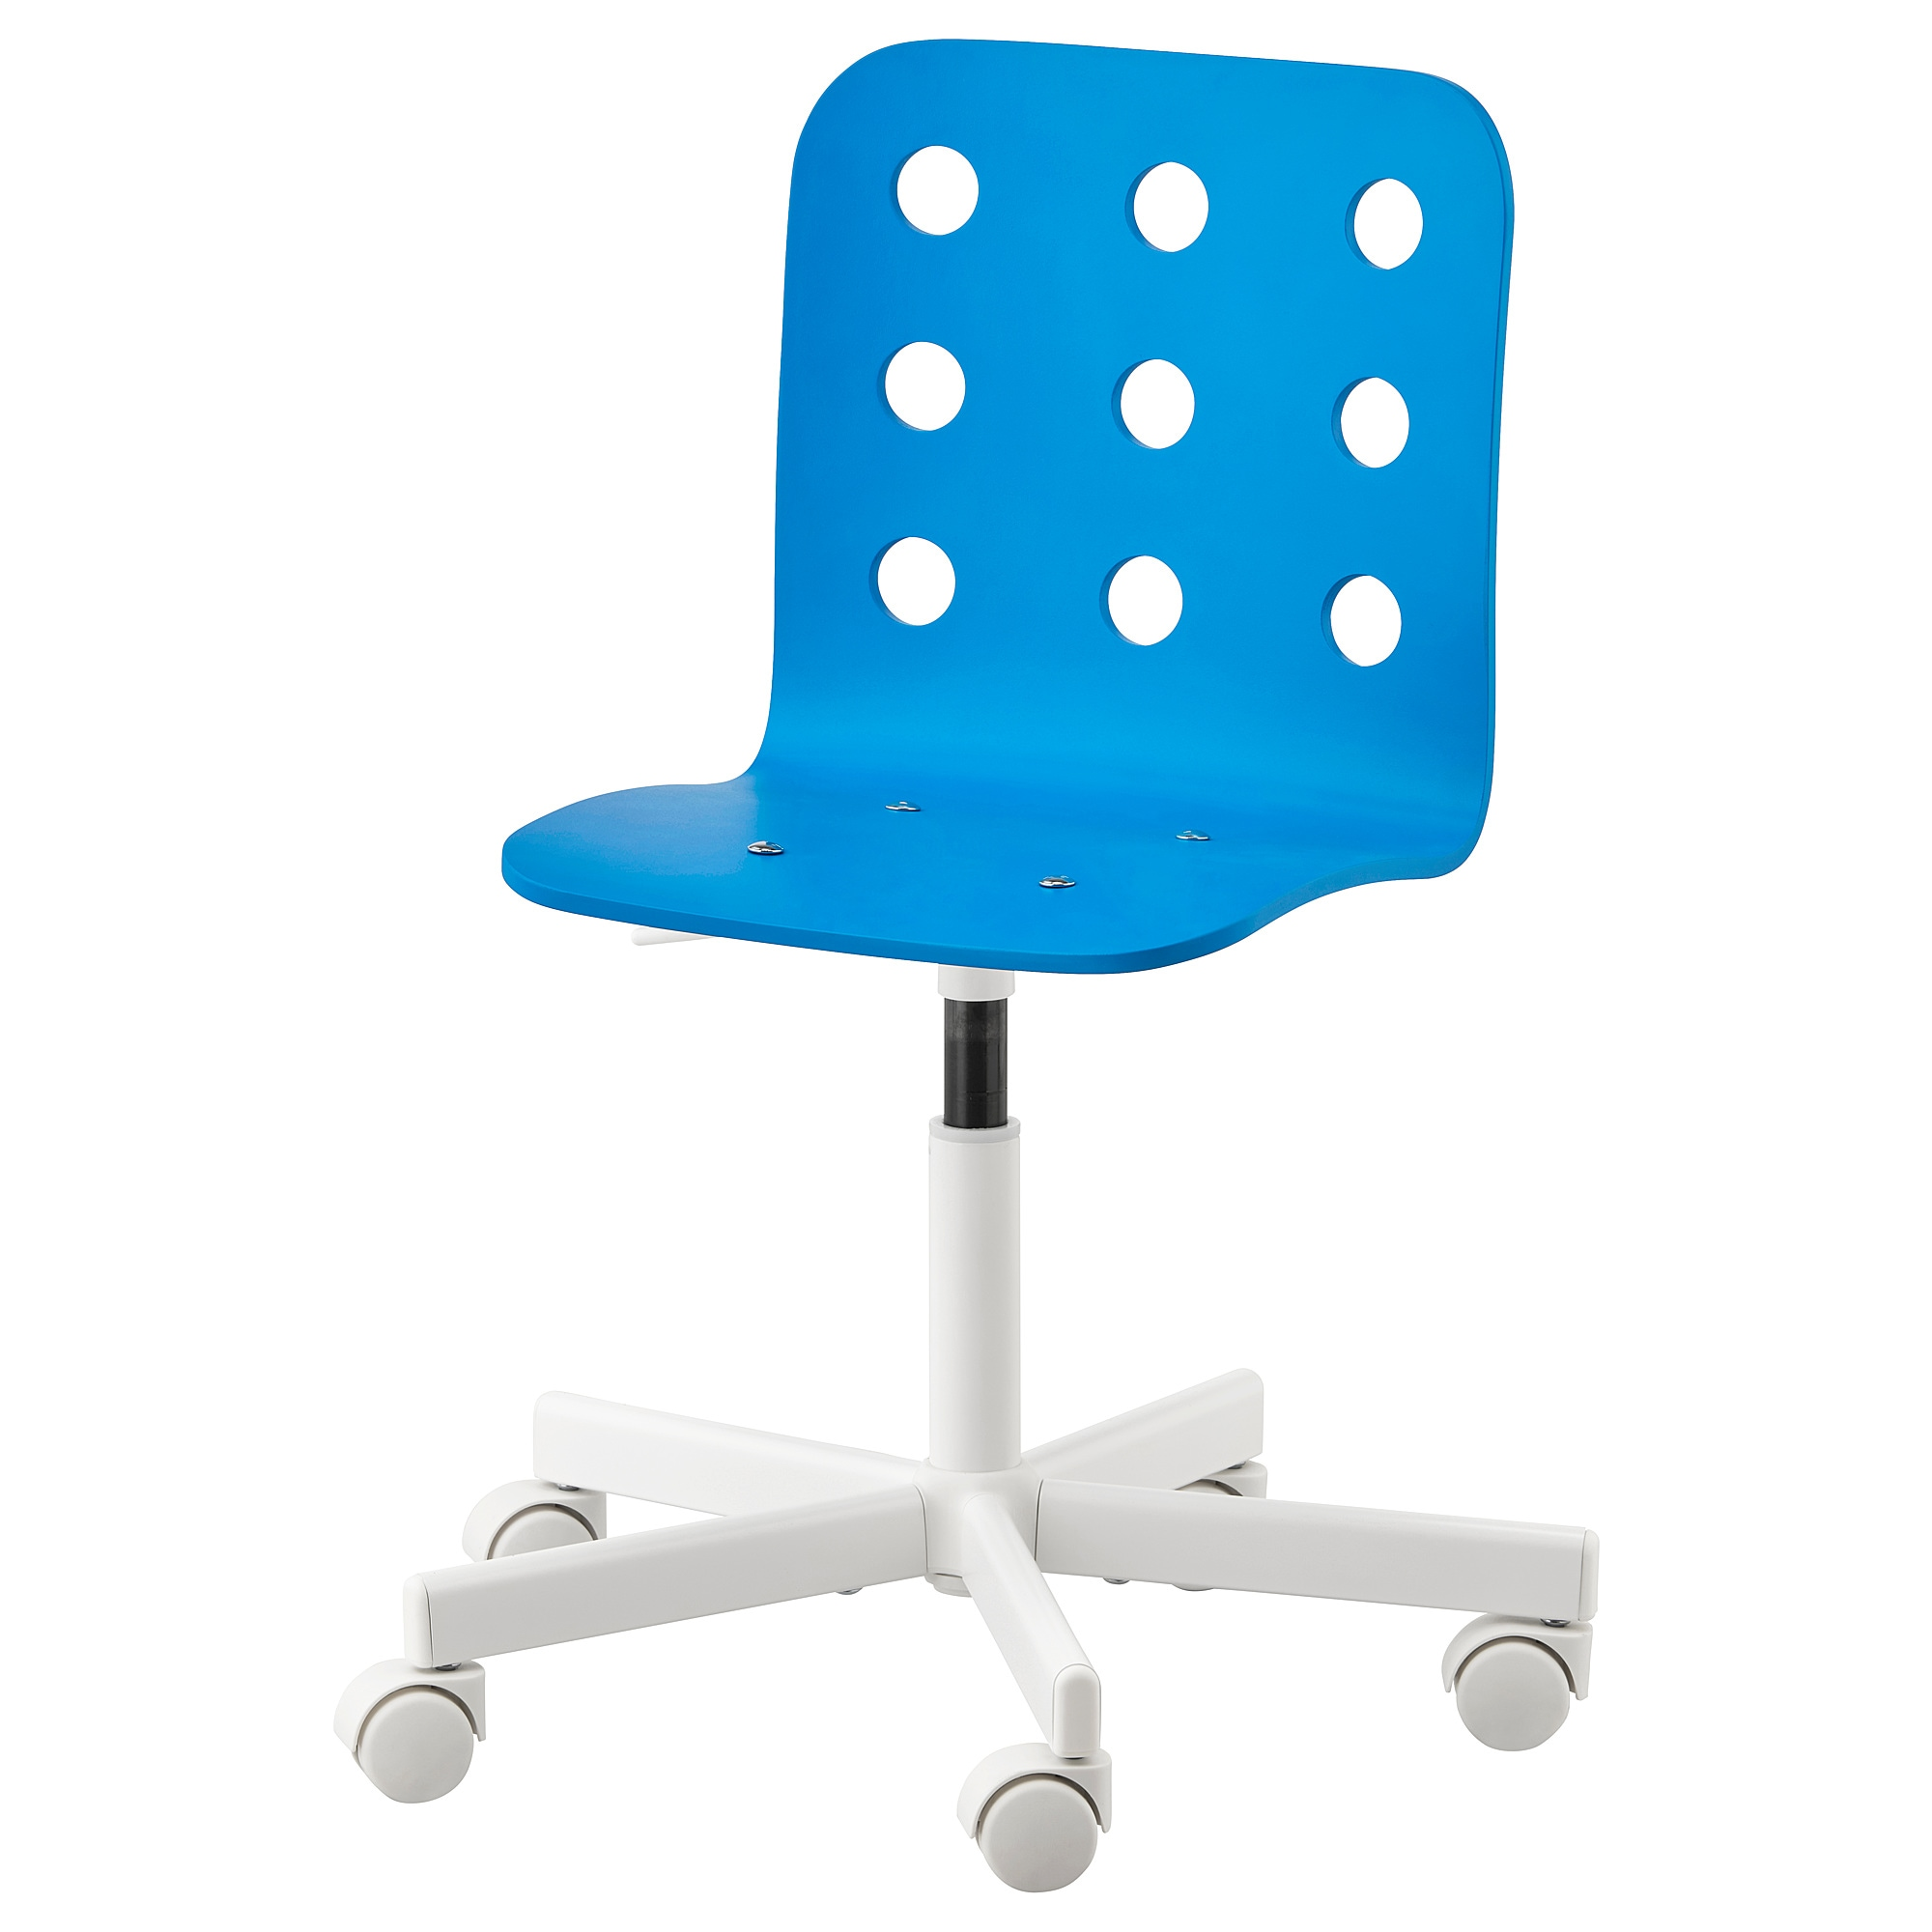 Genial JULES Childrenu0027s Desk Chair, Blue, White